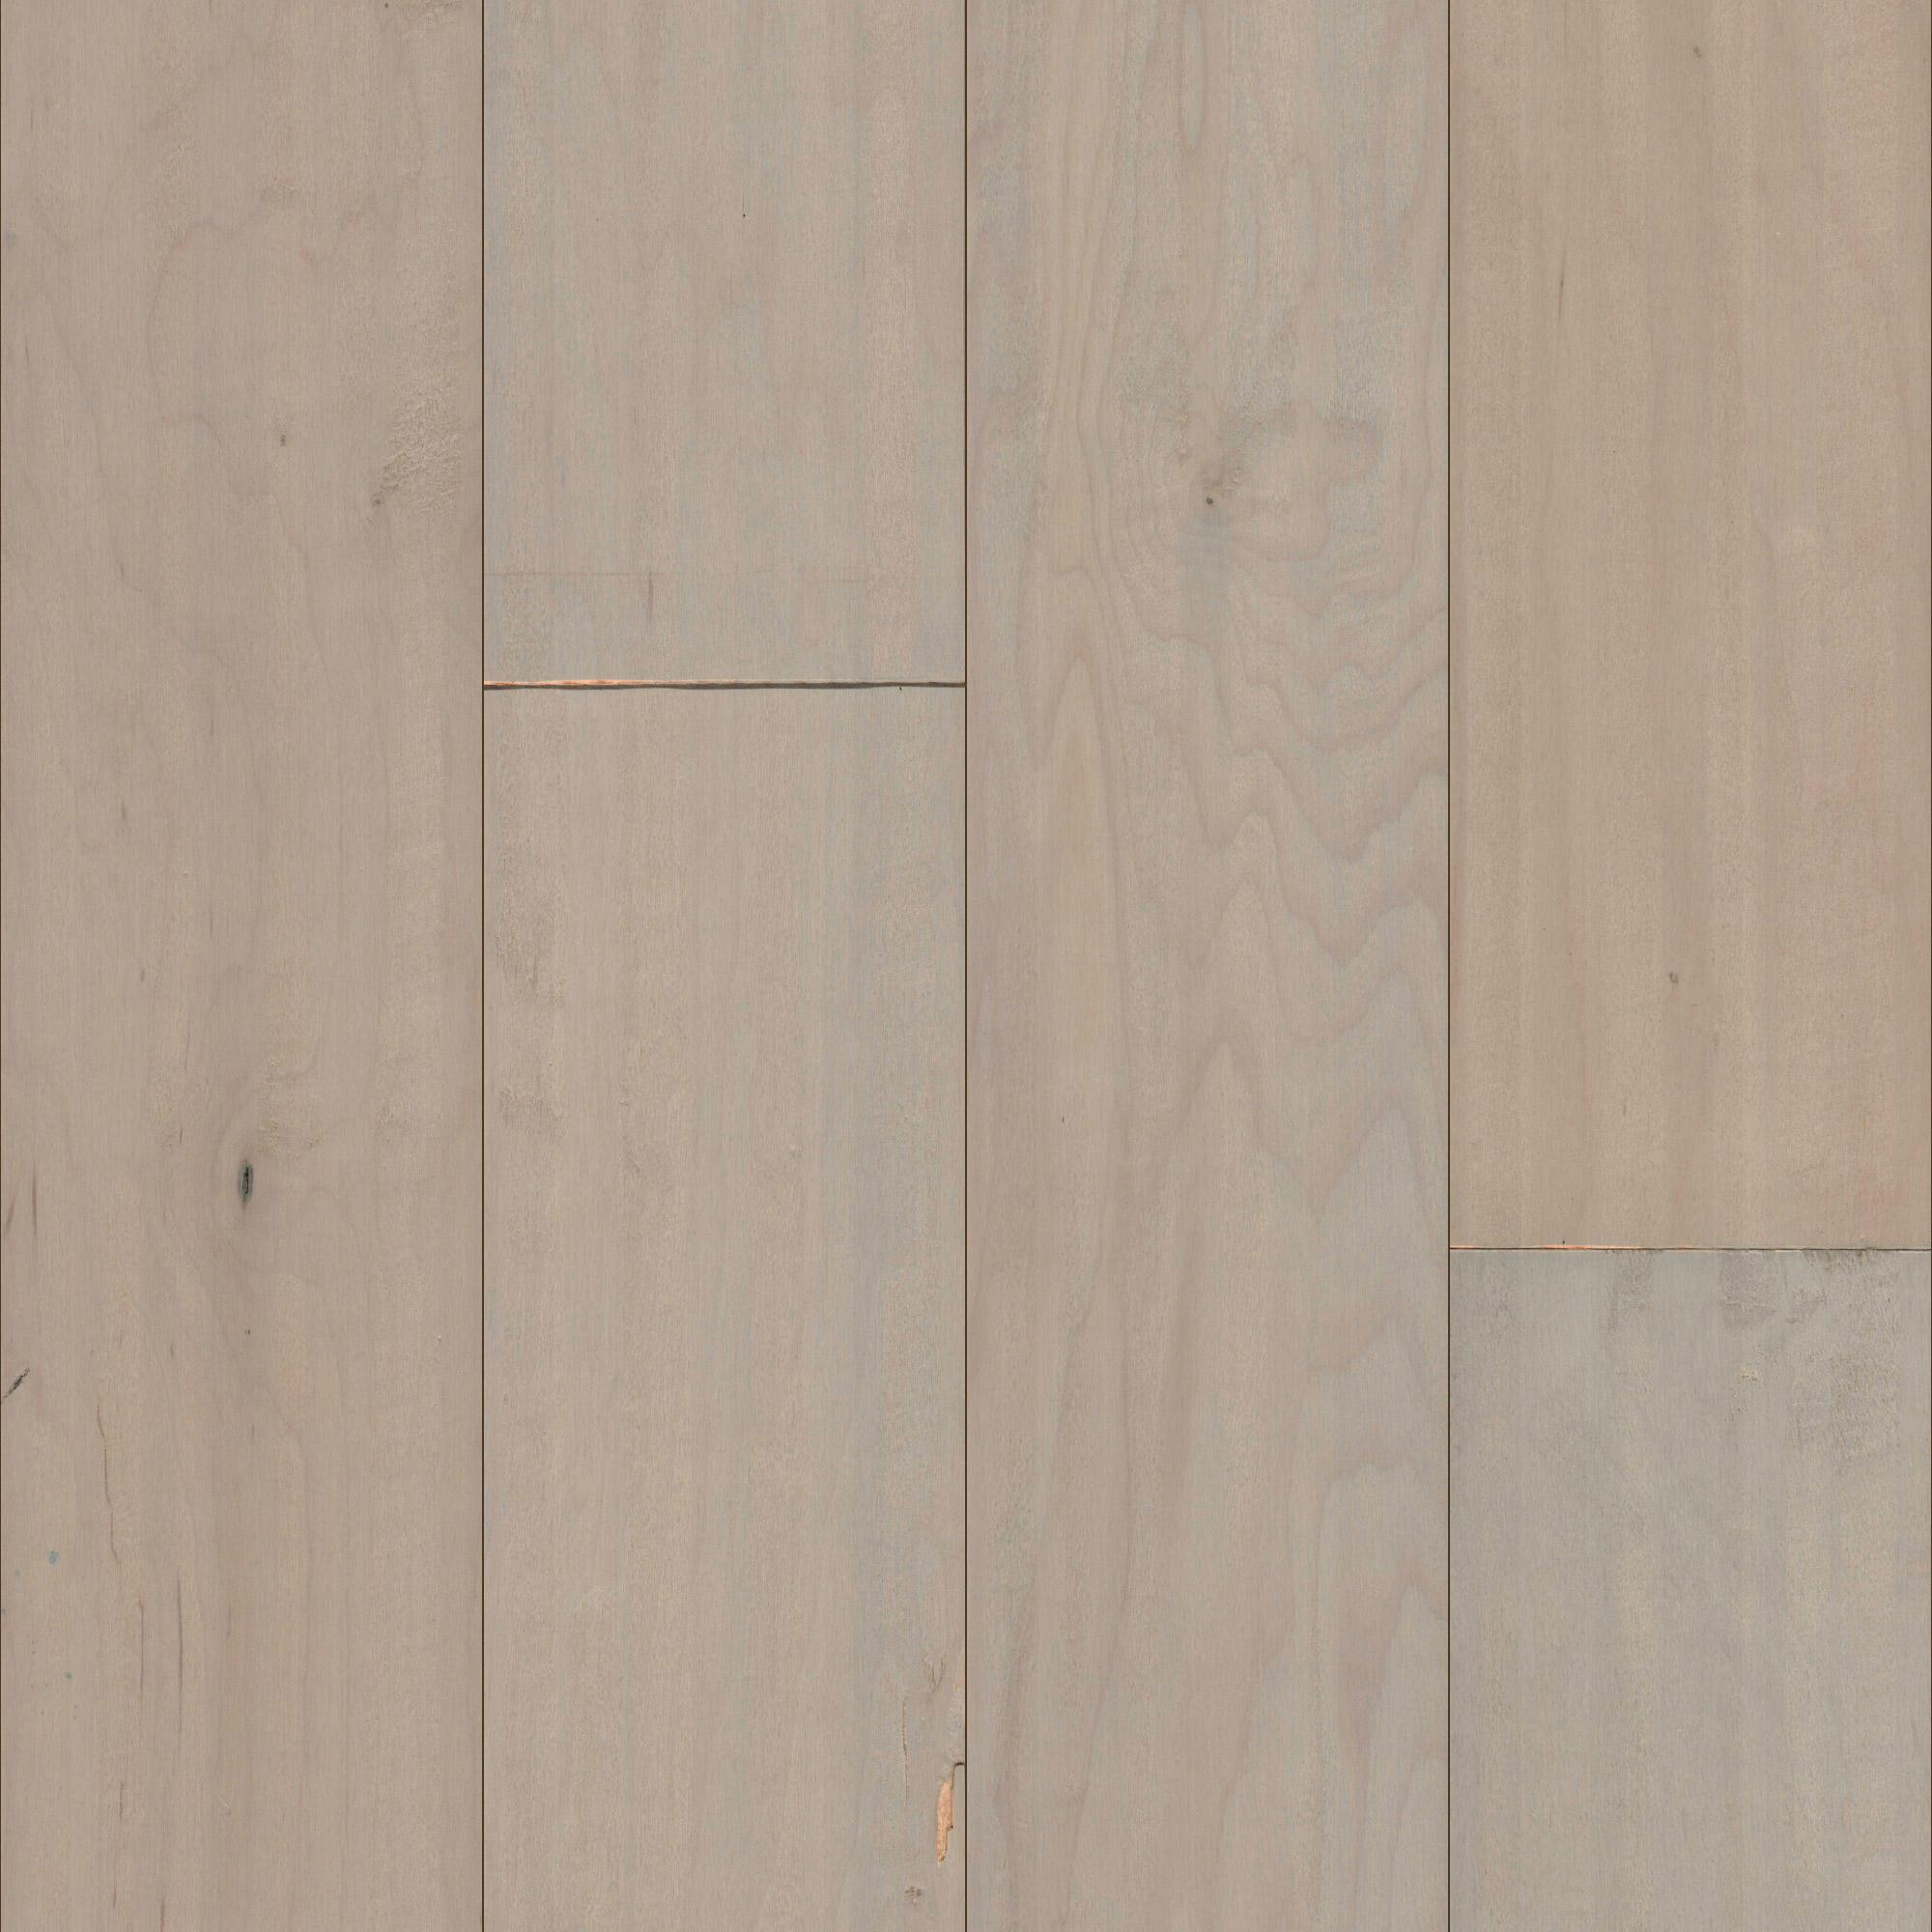 1 1 4 inch hardwood flooring of mullican lincolnshire sculpted maple frost 5 engineered hardwood in mullican lincolnshire sculpted maple frost 5 engineered hardwood flooring